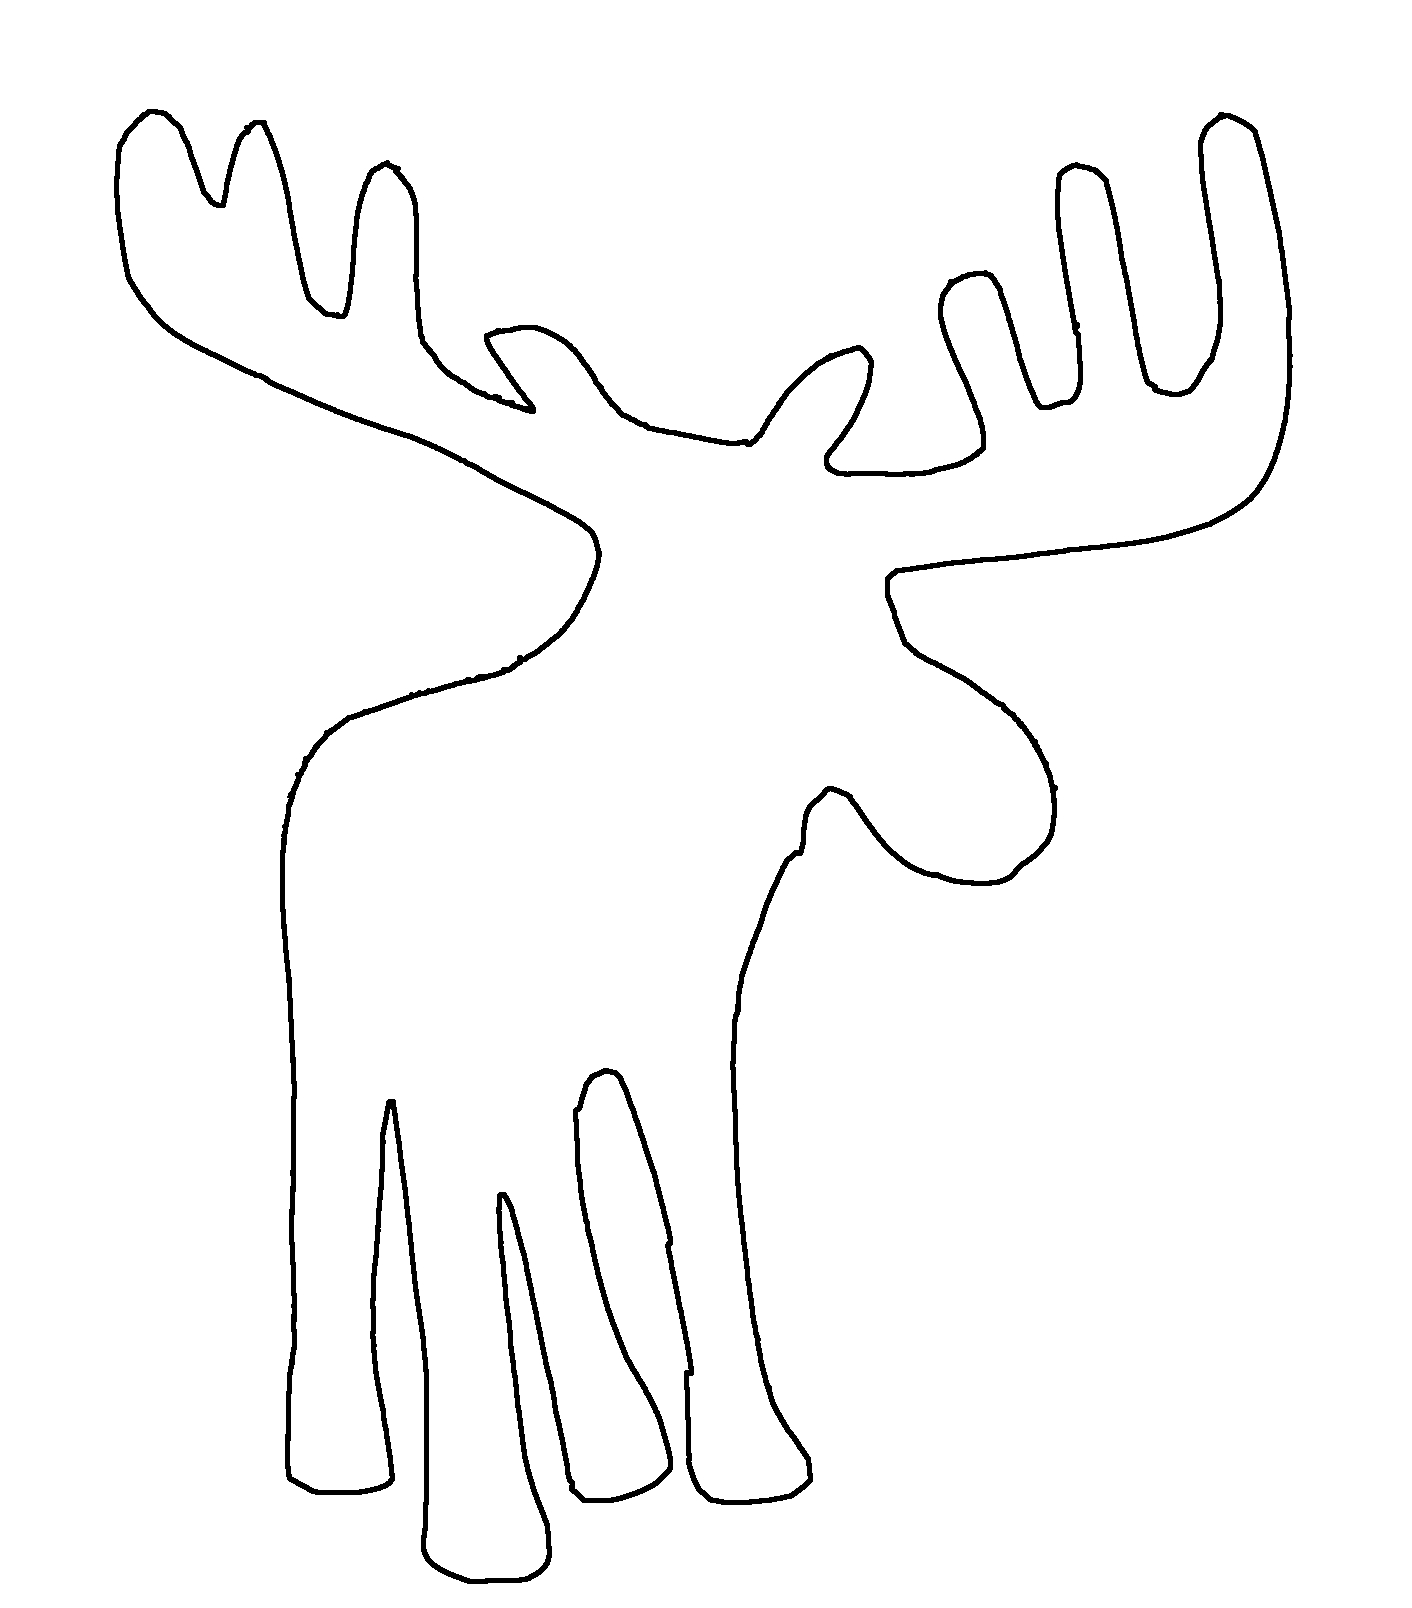 Moose head drawing outline - photo#21